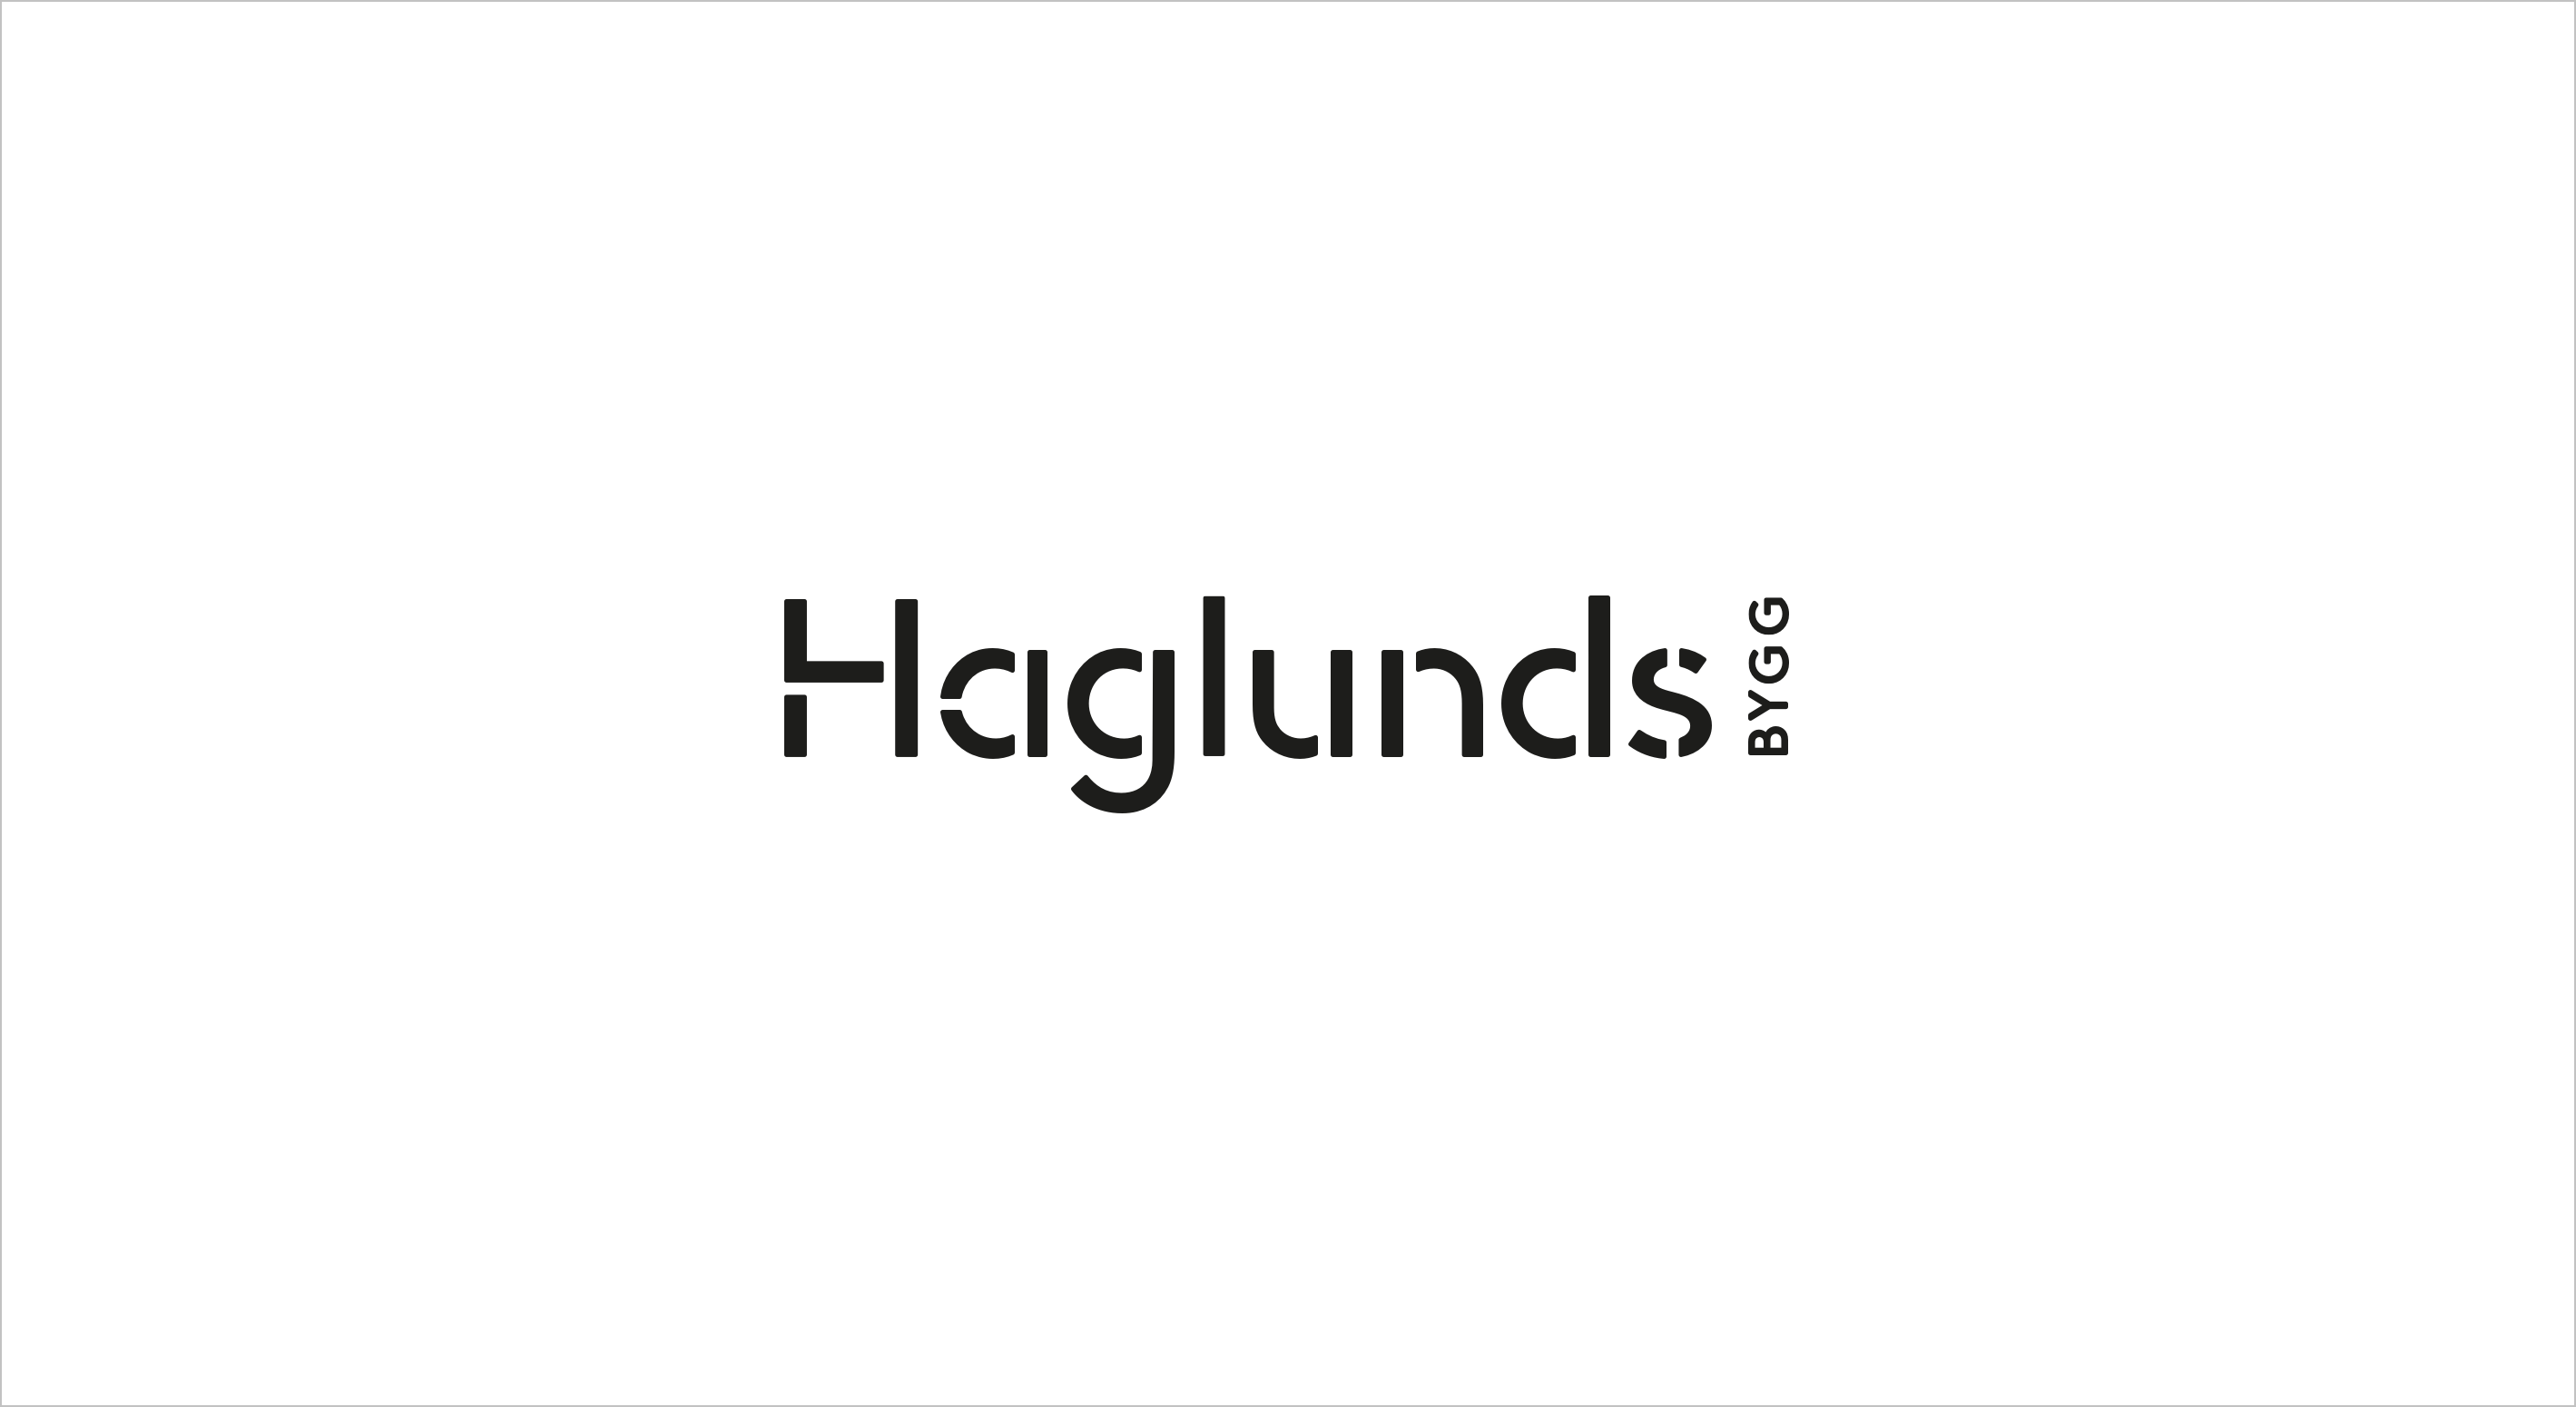 Haglunds_BlackonWhite